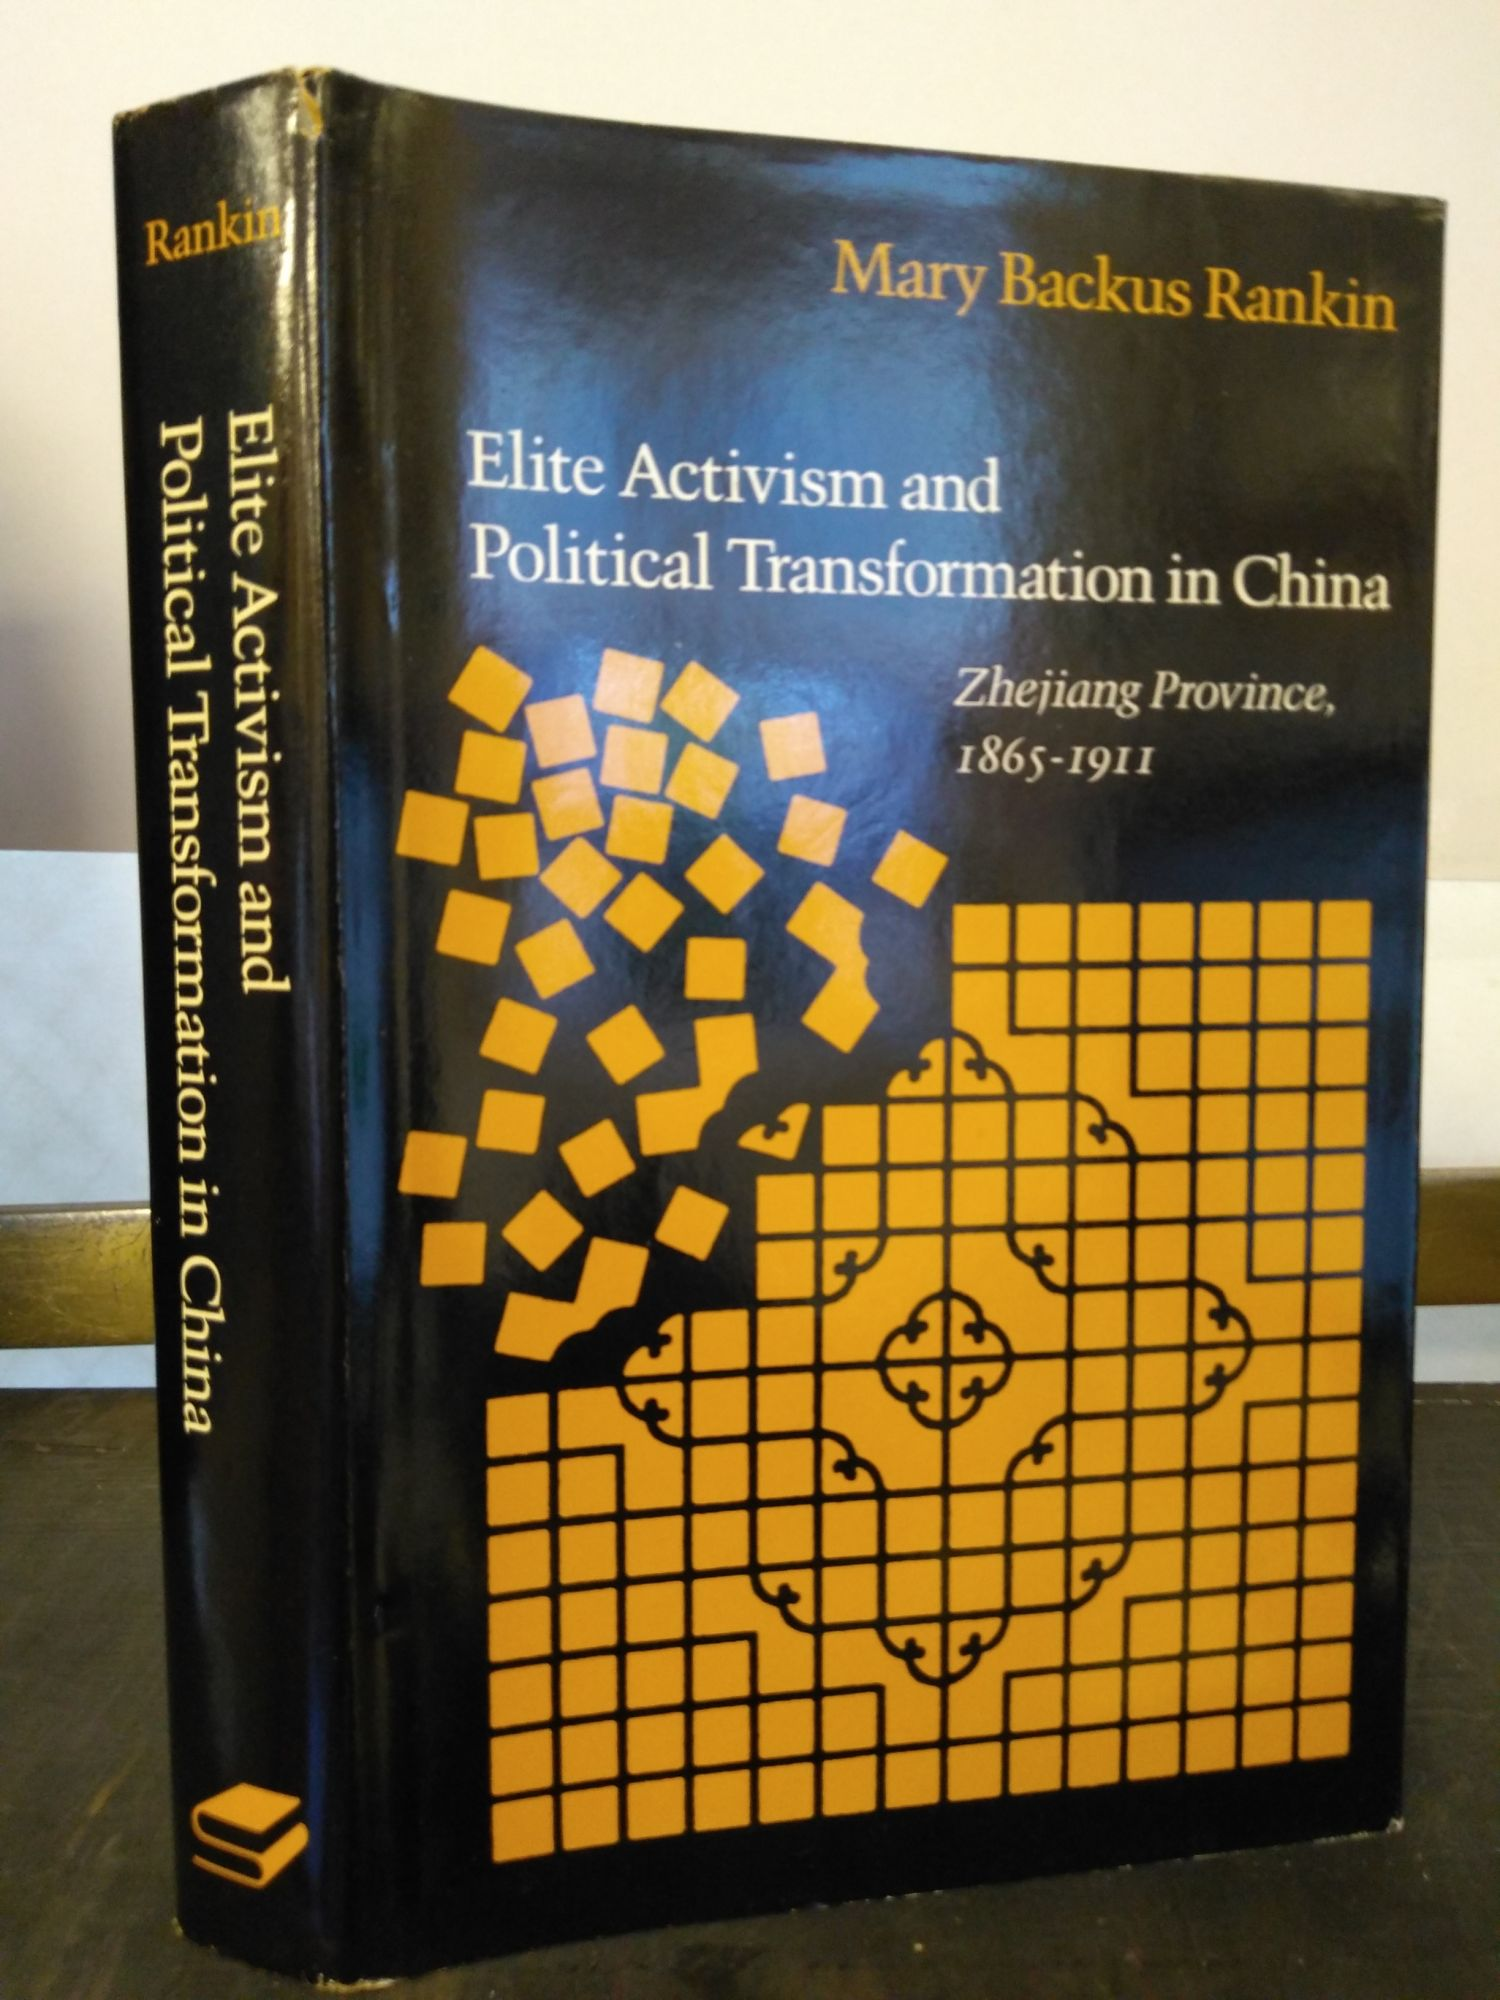 ELITE ACTIVISM AND POLITICAL TRANSFORMATION IN CHINA: ZHEJIANG PROVINCE, 1865-1911. Mary Backus Rankin.